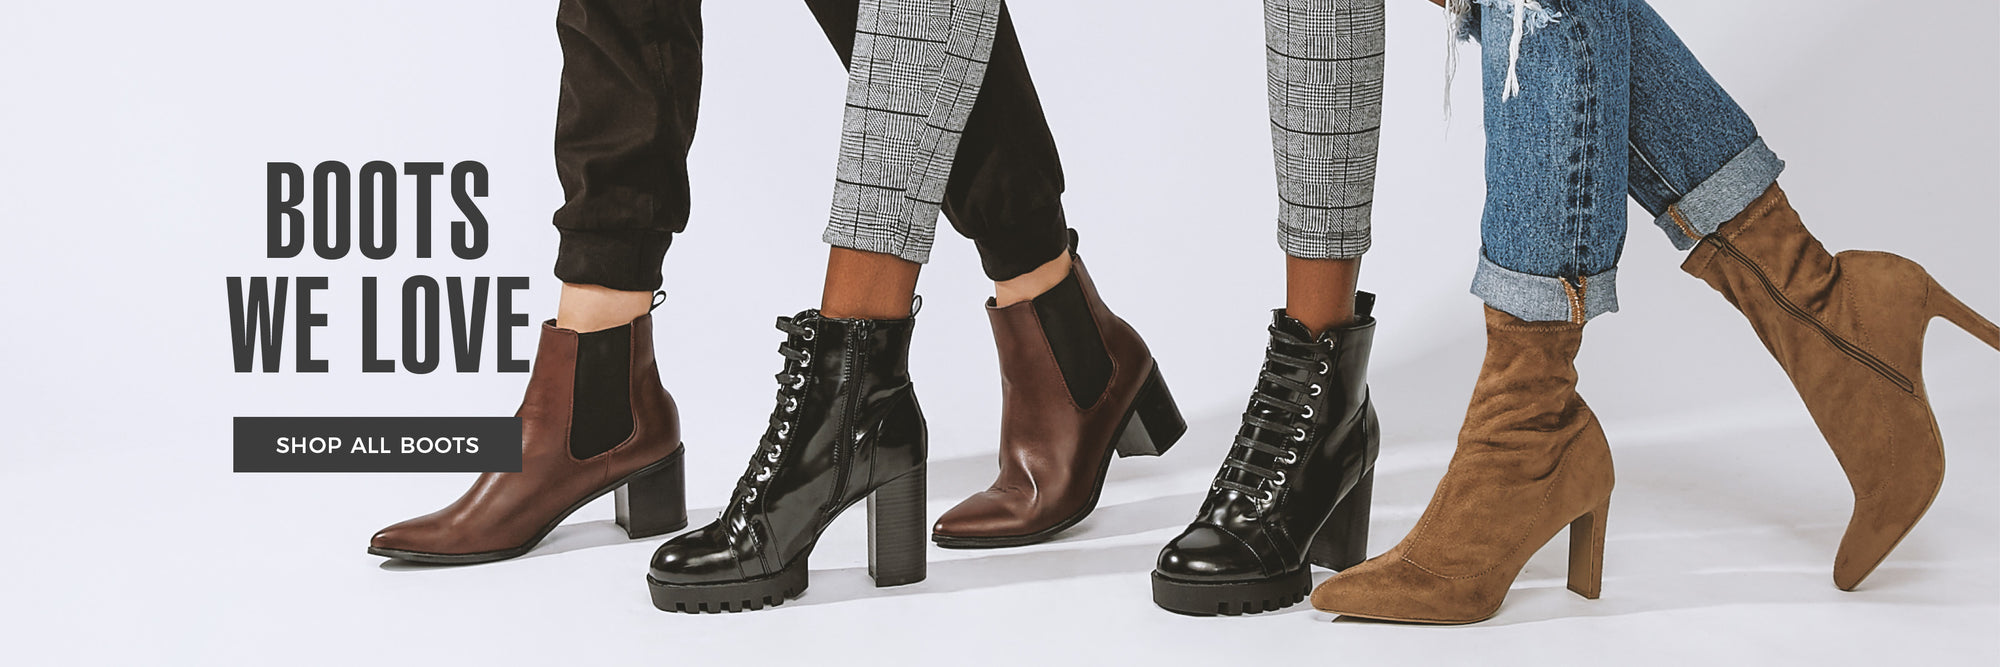 Boots We Love - Shop Boots